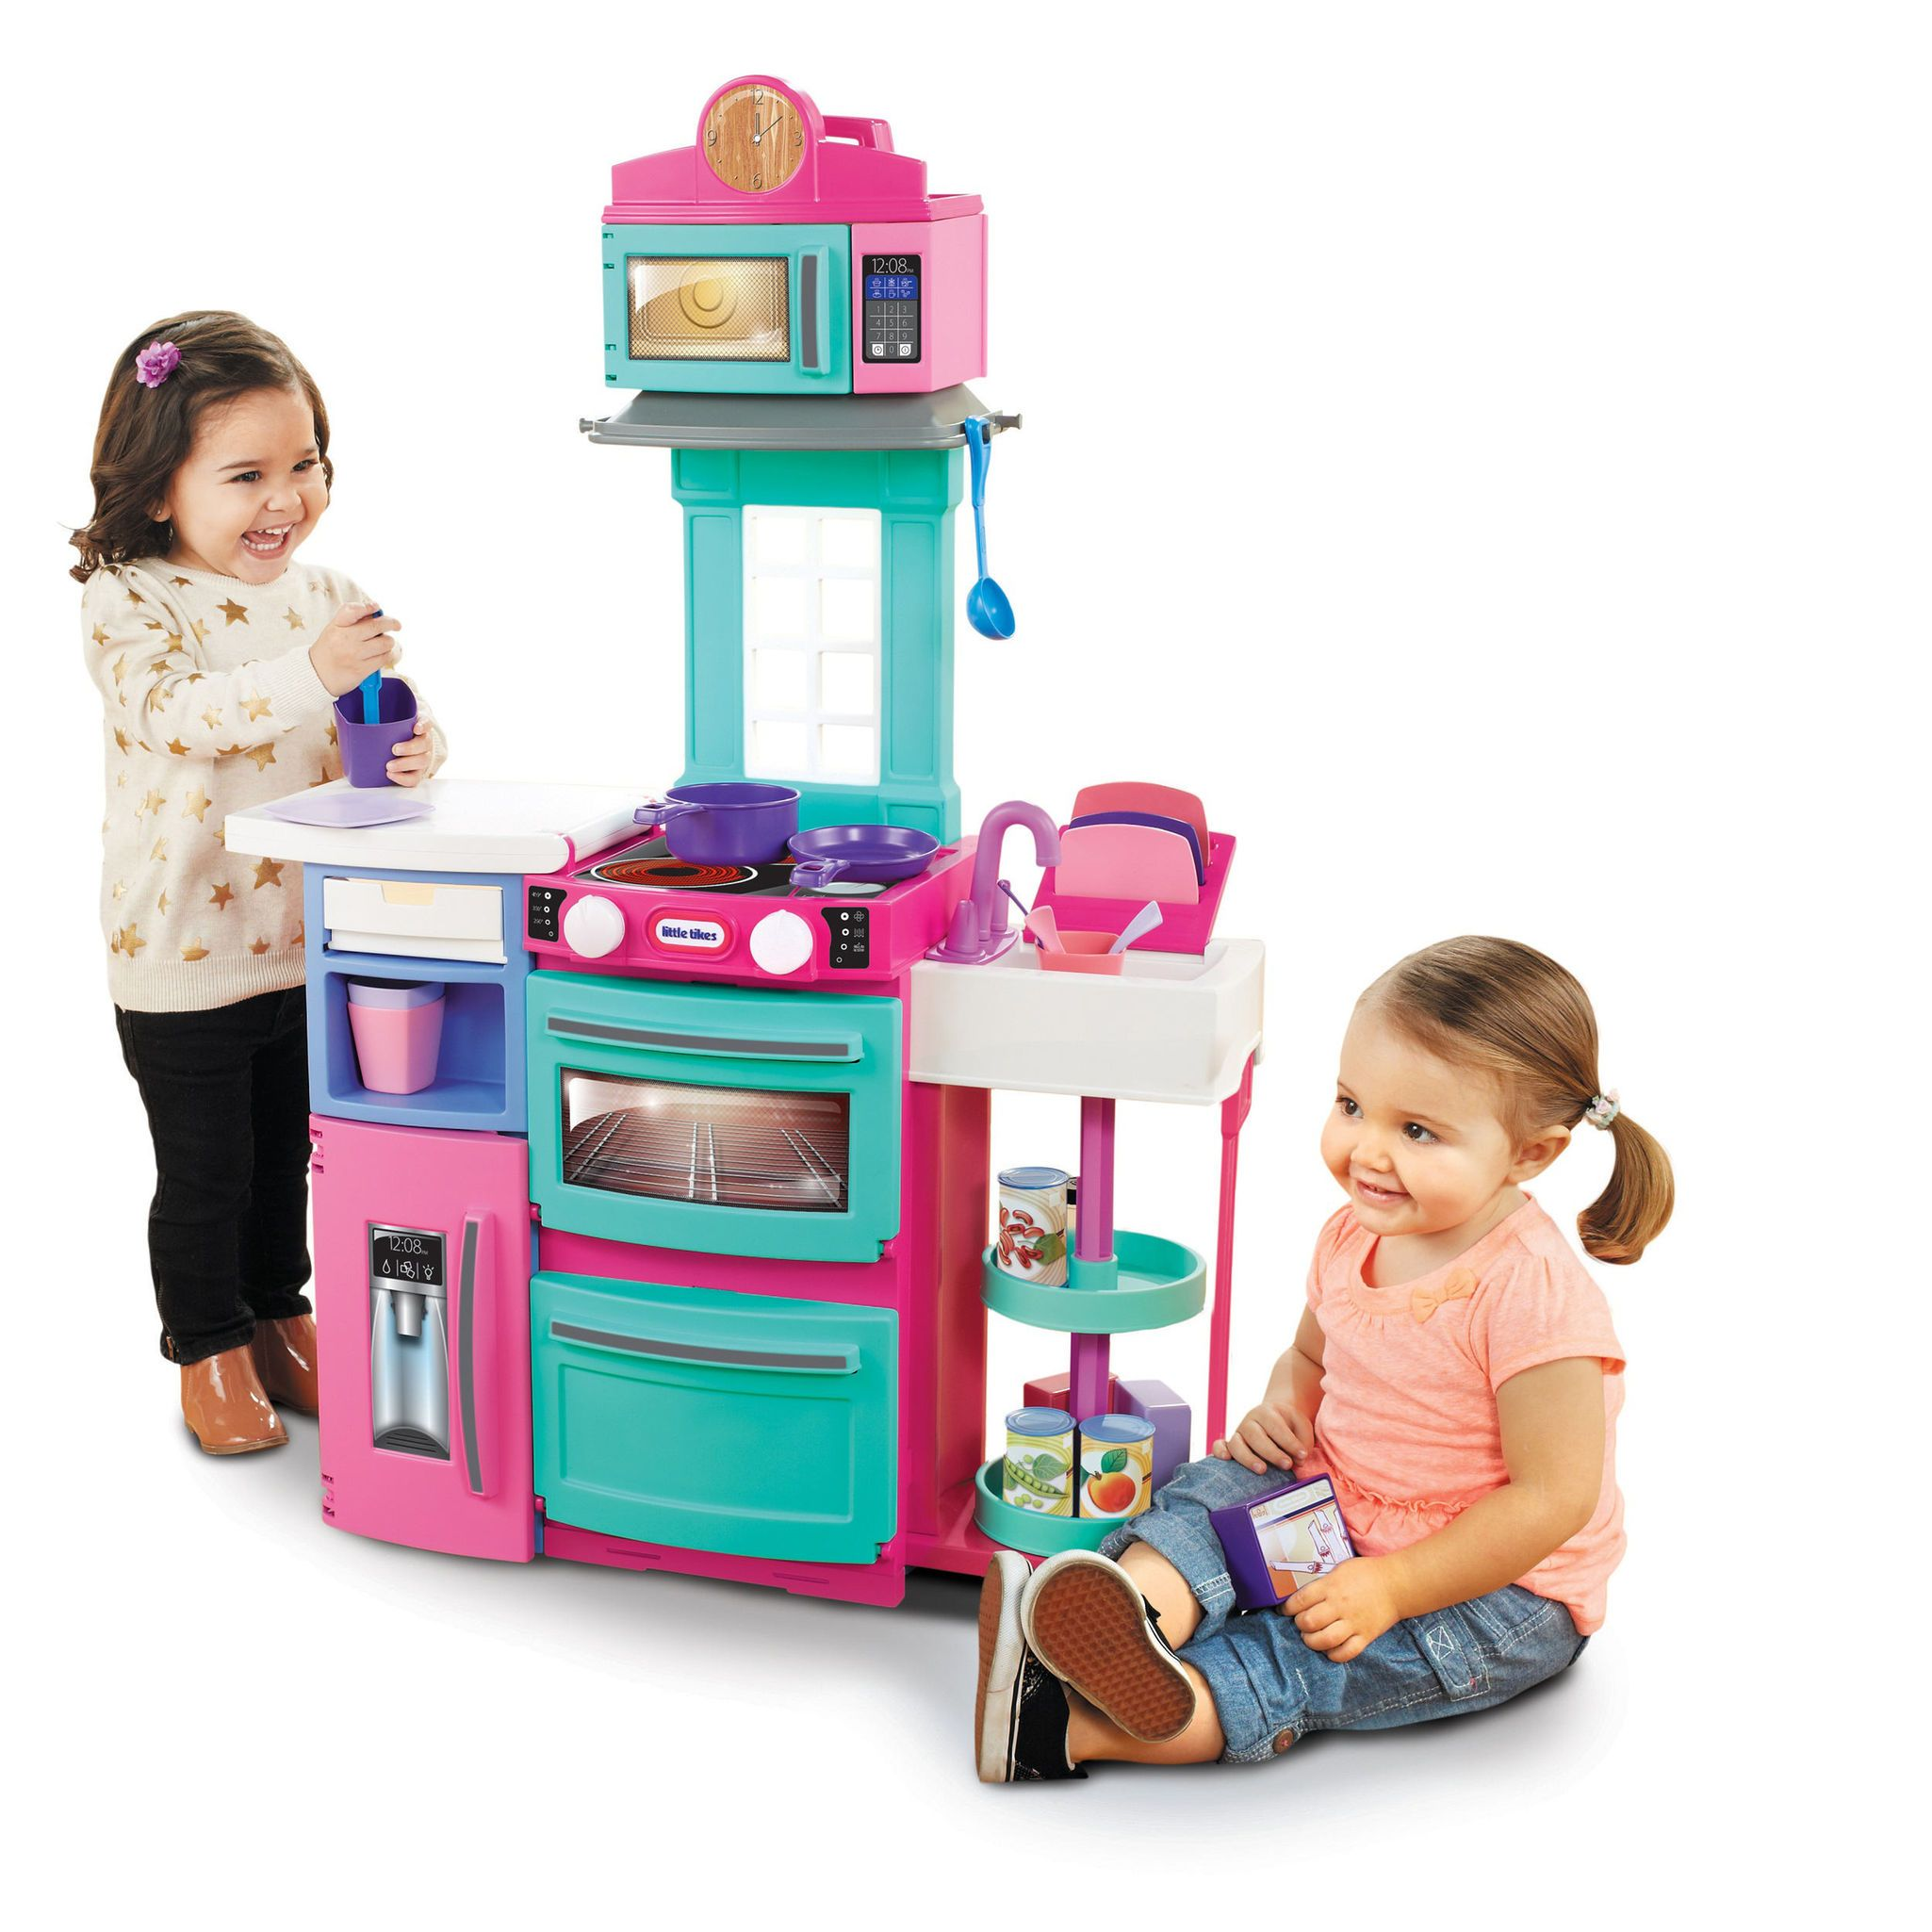 Little Tikes Cook \'n Store Kitchen Playset - Pink | Christmas 2017 ...